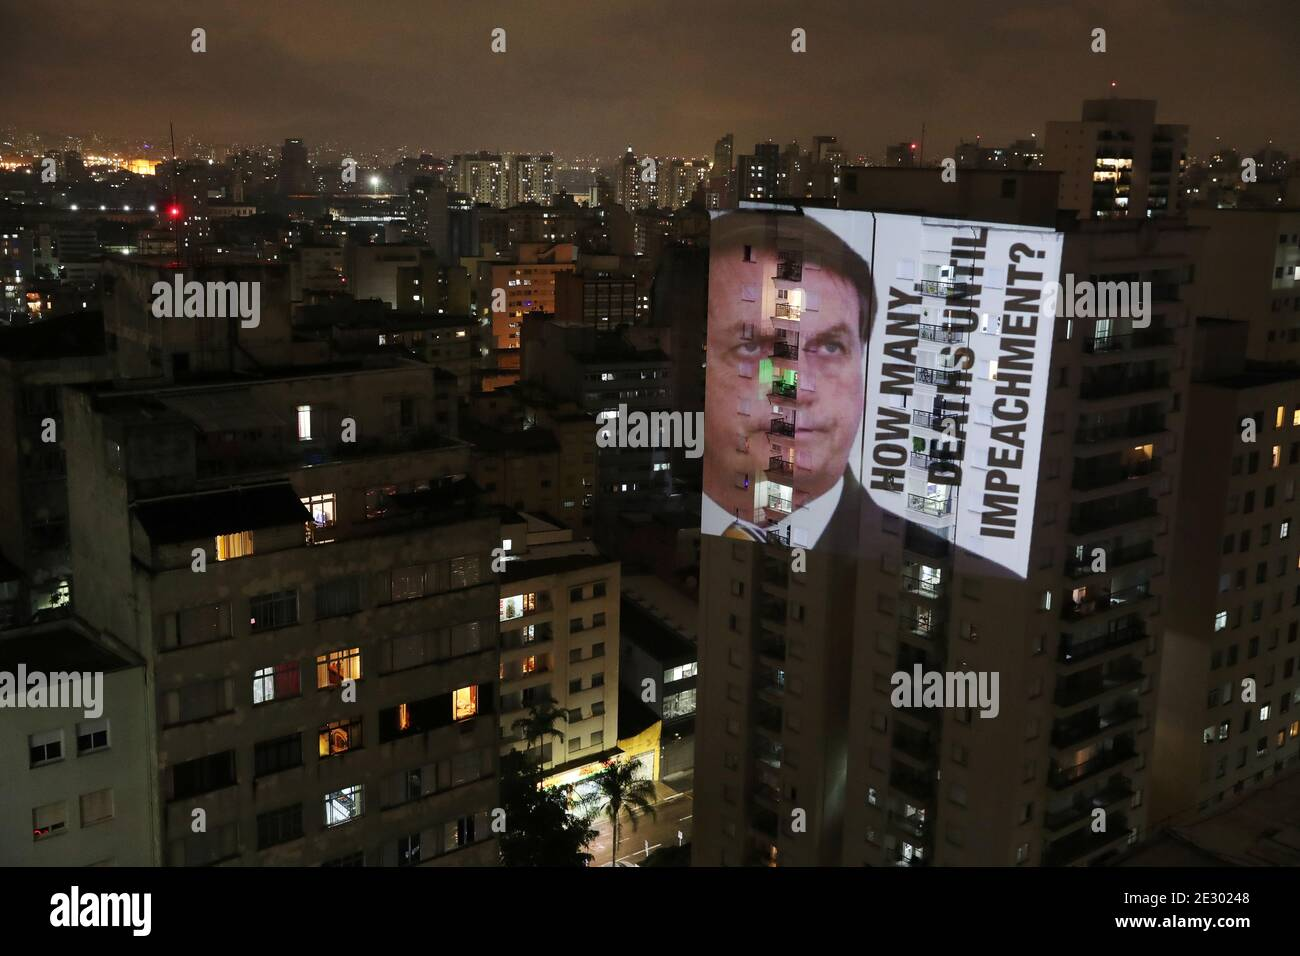 """An image of Brazil's President Jair Bolsonaro with the phrase """"How many deaths until impeachment"""" is projected on a building during a protest against his policies for the coronavirus disease (COVID-19) outbreak and Manaus' health crisis at Santa Cecilia neighbourhood in Sao Paulo, Brazil January 15, 2021. REUTERS/Amanda Perobelli Stock Photo"""